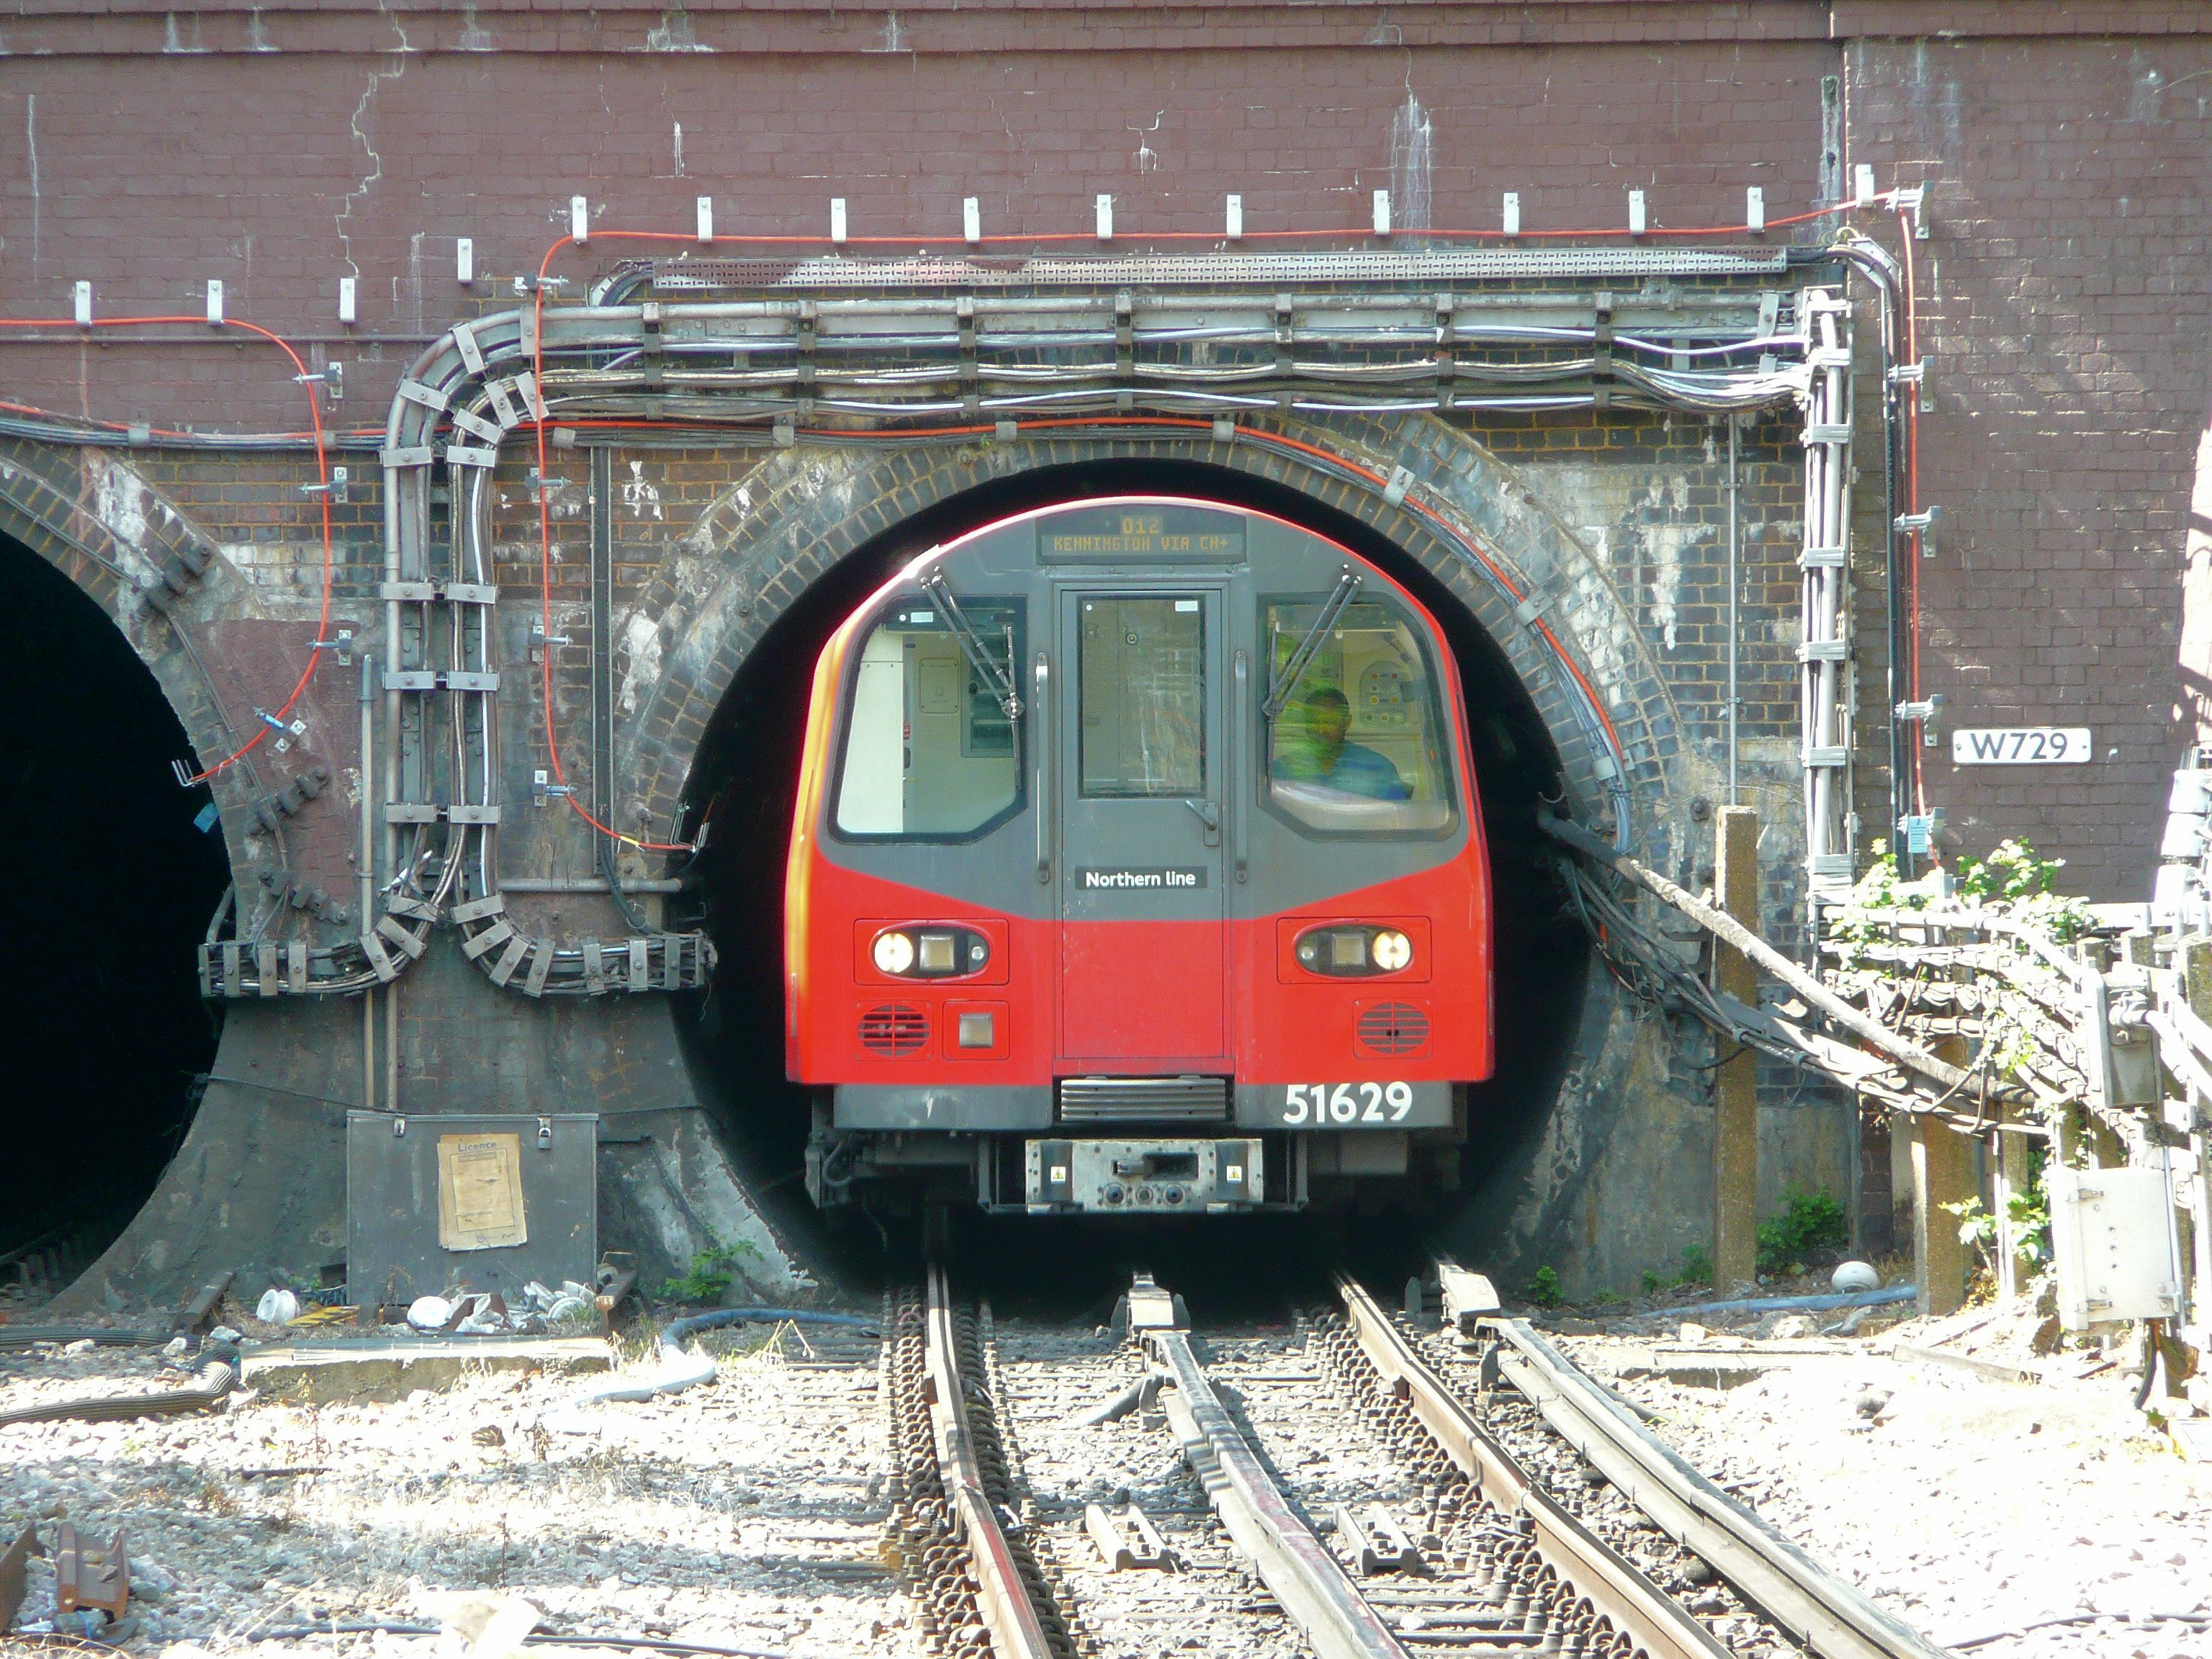 http://upload.wikimedia.org/wikipedia/commons/9/93/Why_London_Underground_is_nicknamed_The_Tube.jpg